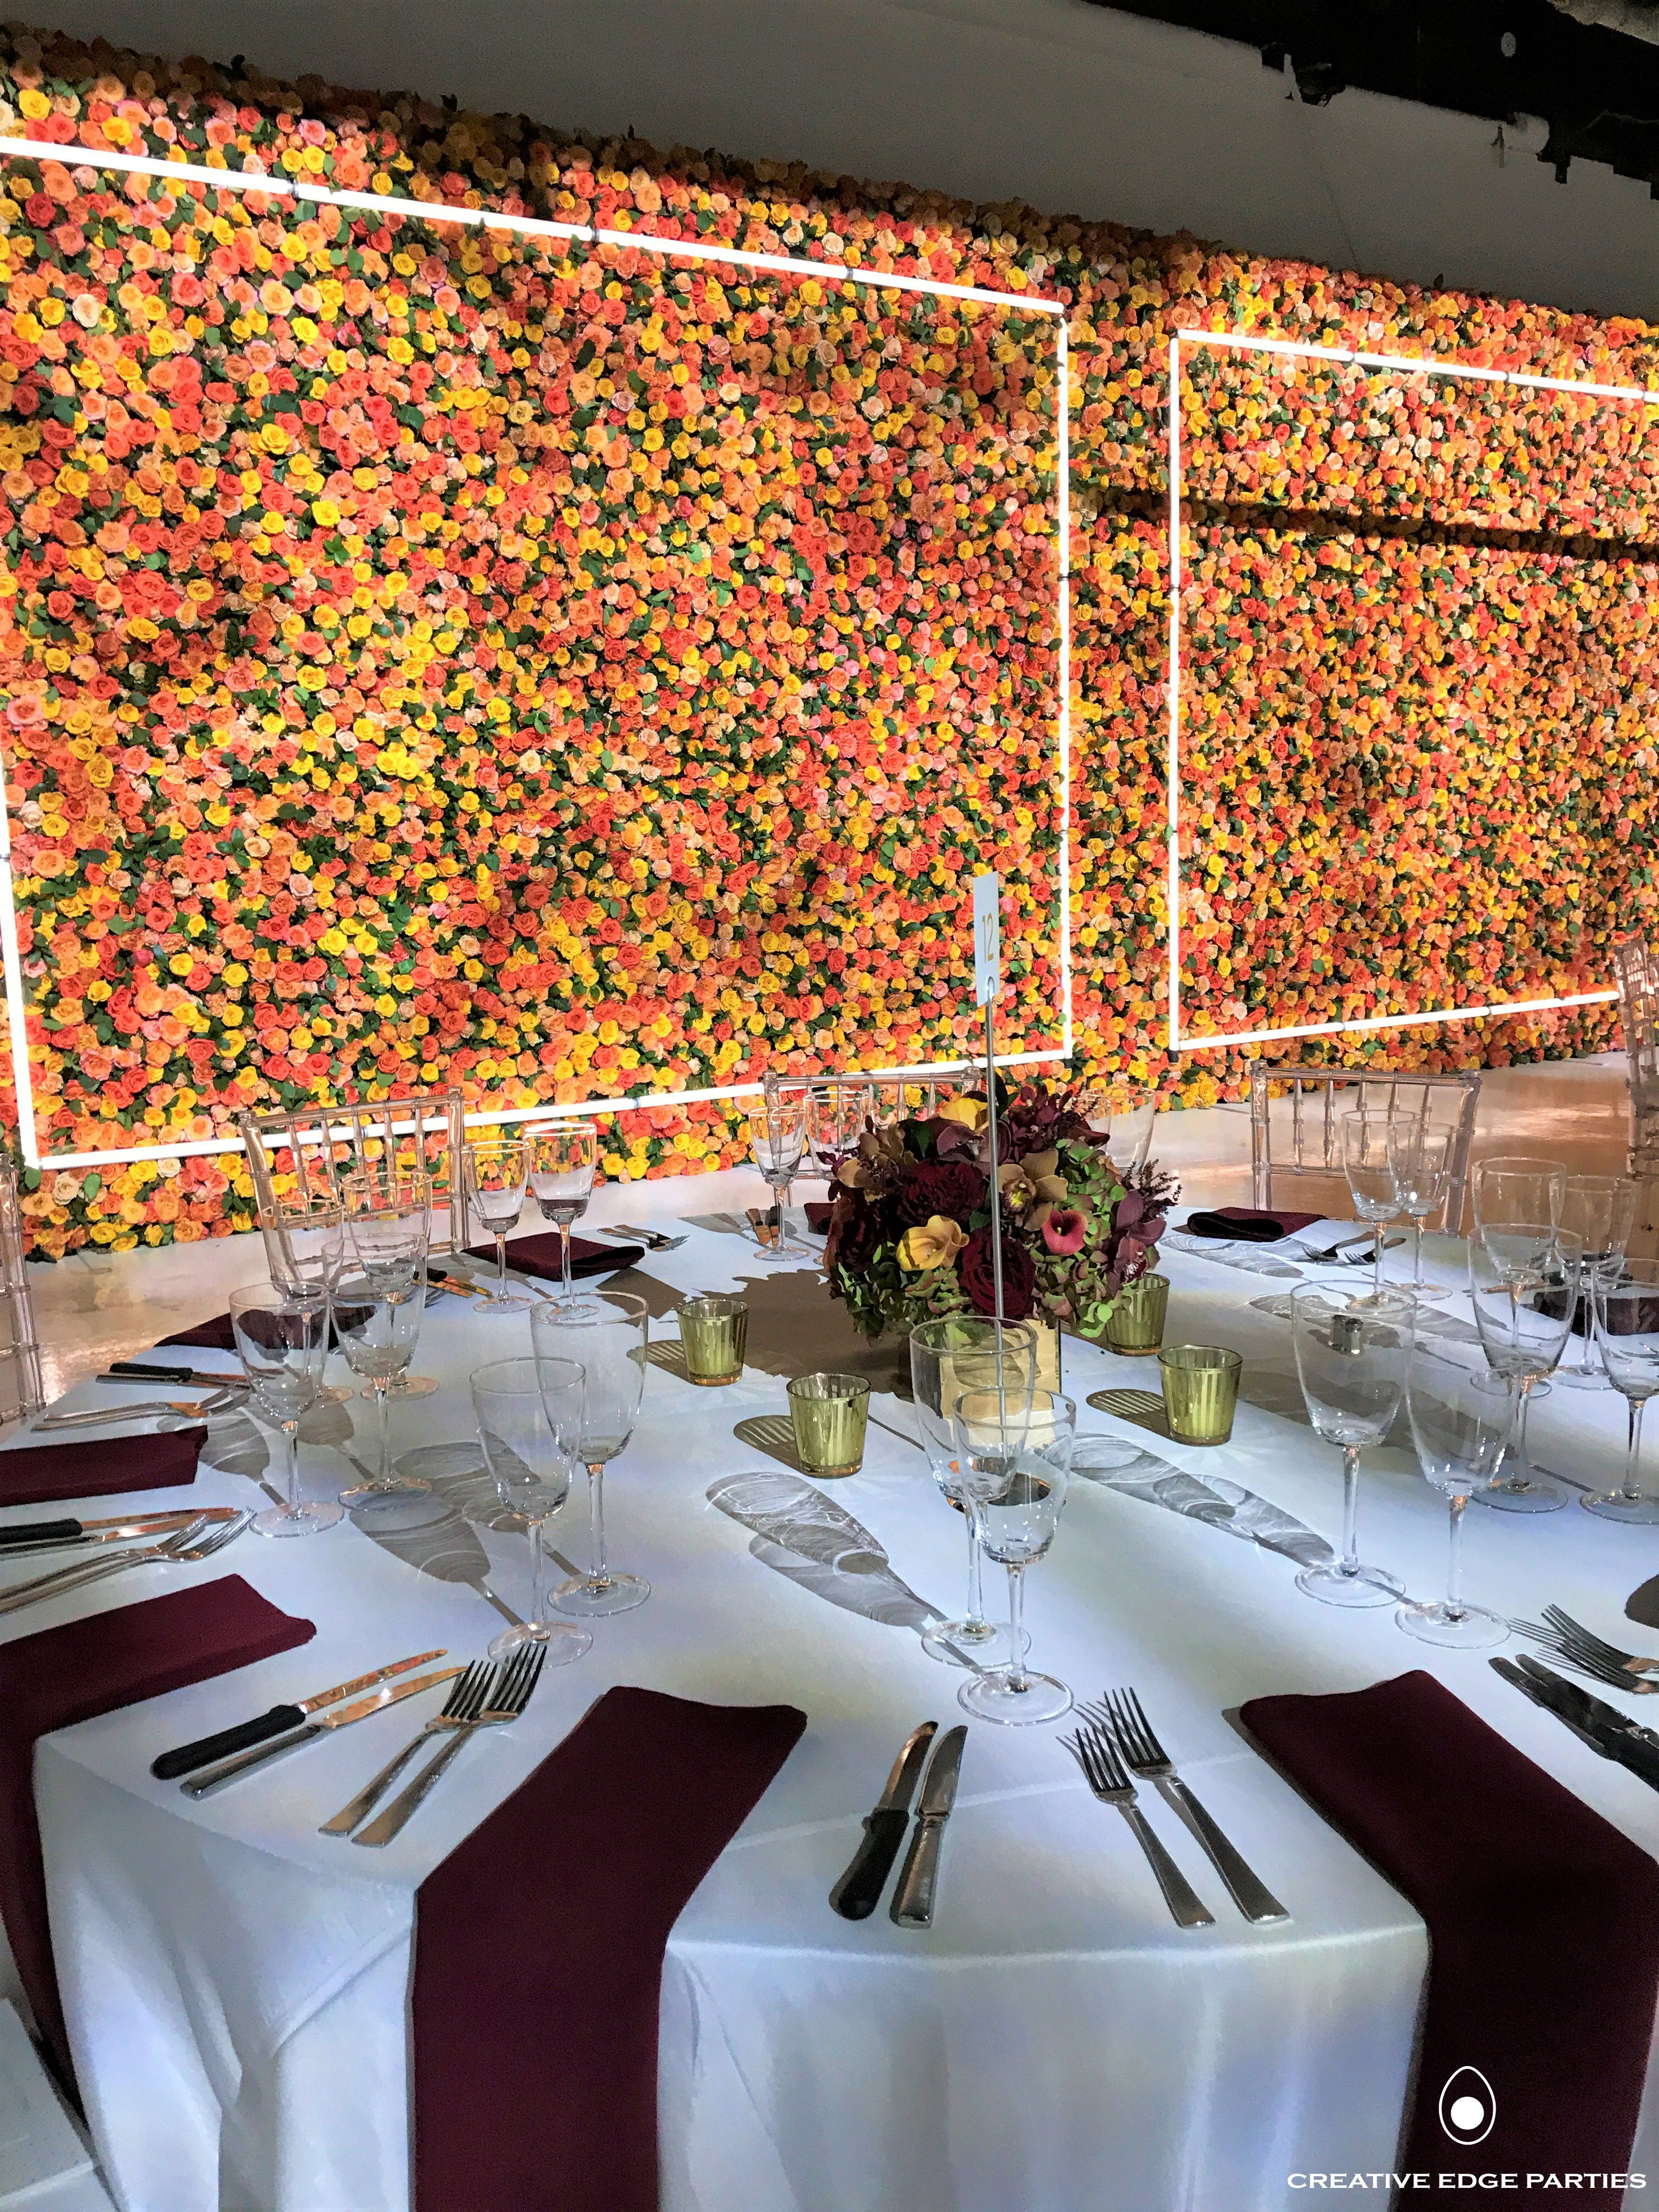 Seated Dinner With A Floral Wall Background Gala Eventinspo Floralgoals Yes Design Miami Wall Background Floral Wall Table Decorations